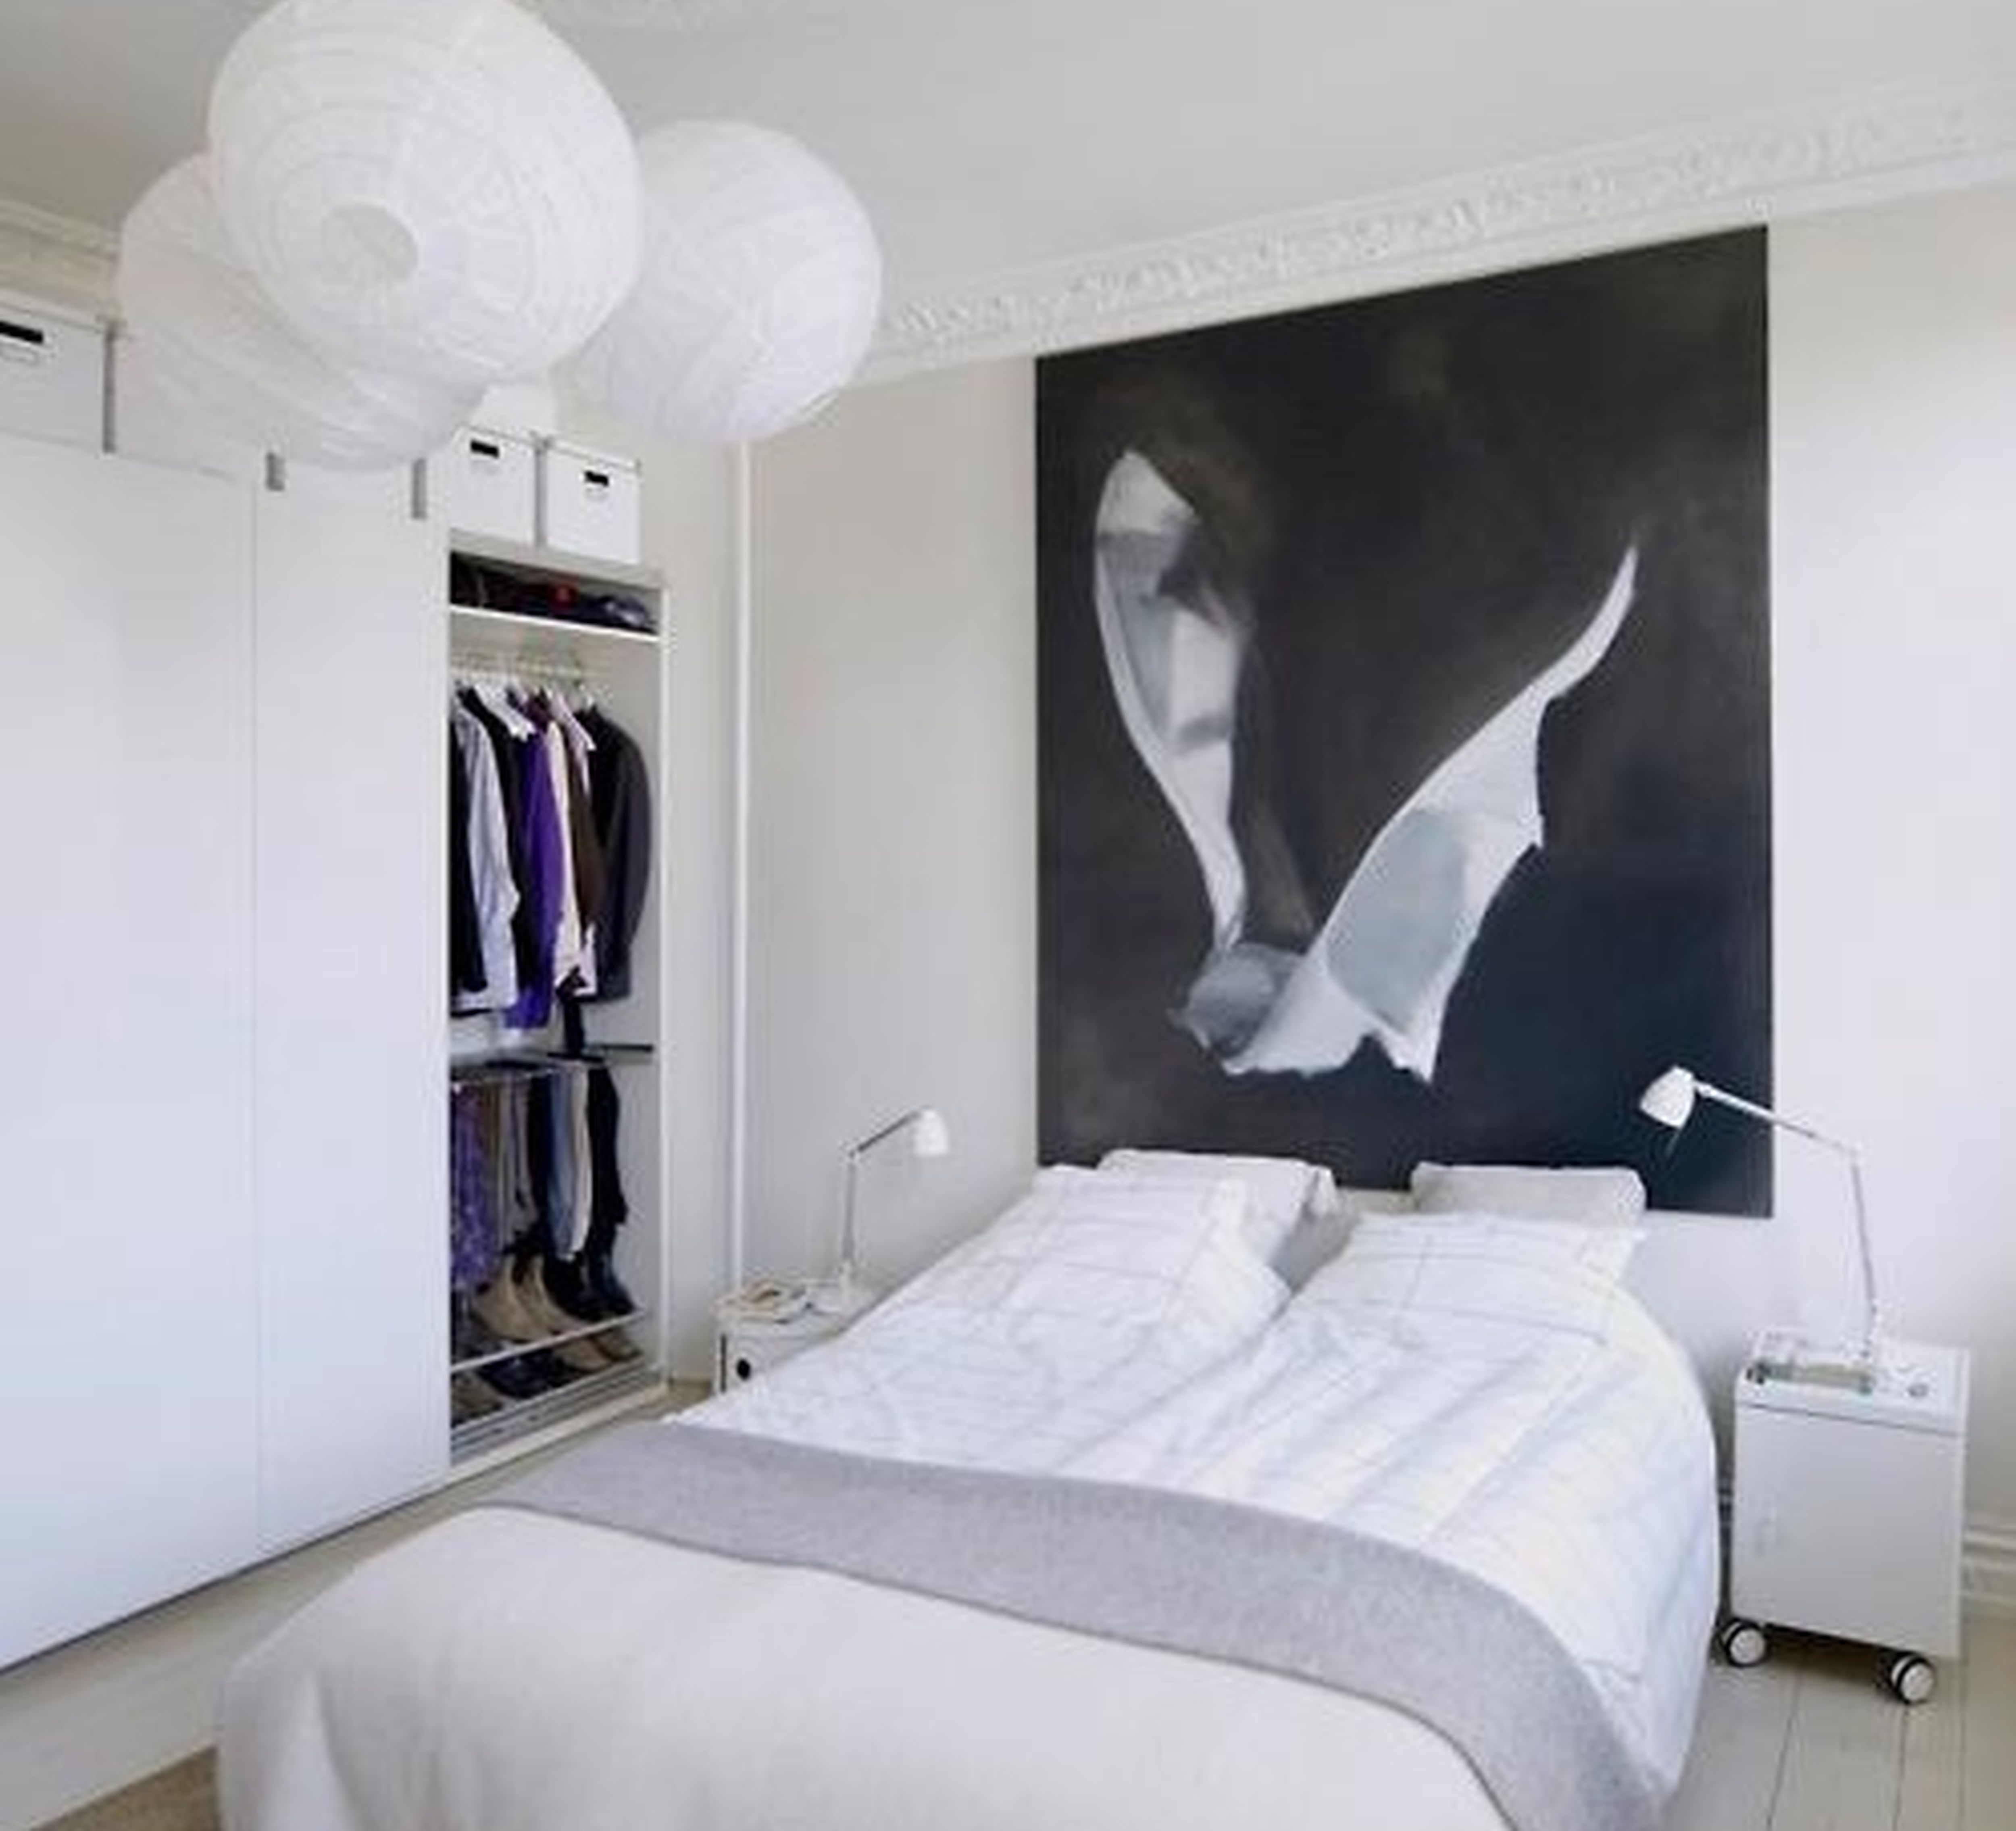 small bedroom furniture furniture design for small bedroom photo - 4 CAHKFZH